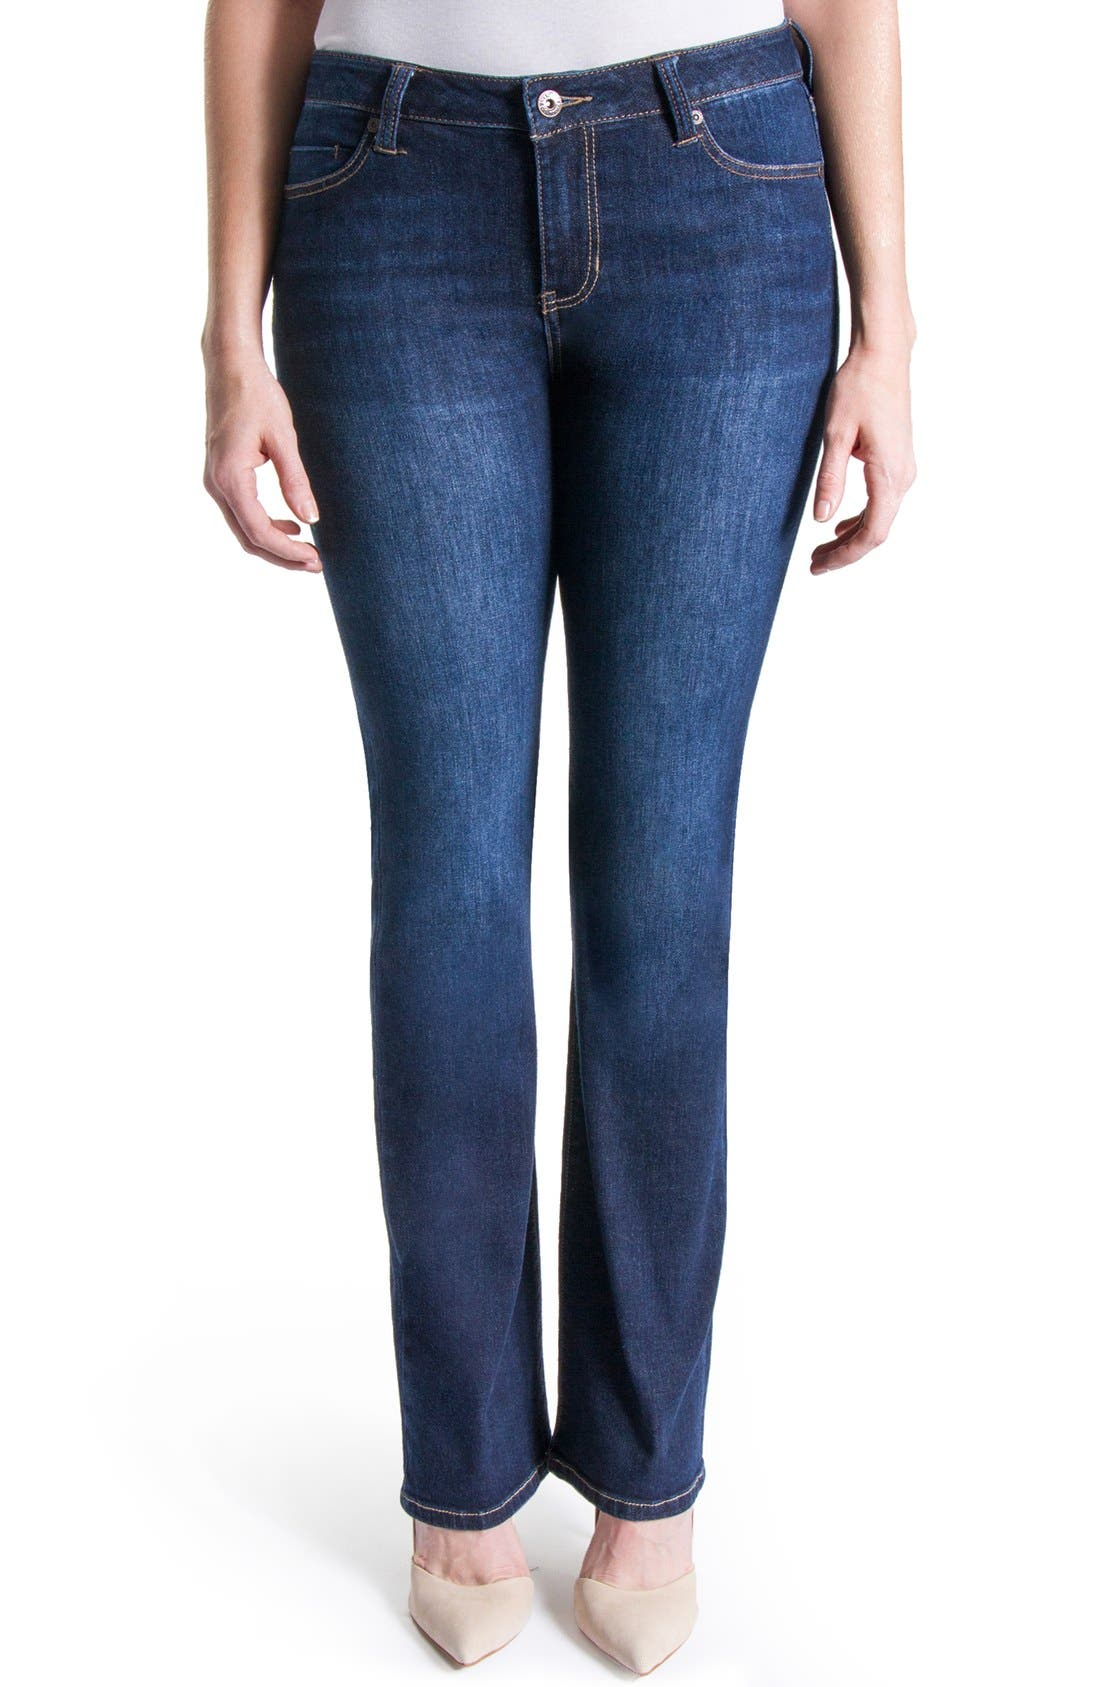 Main Image - Liverpool Jeans Company 'Lucy' Stretch Bootcut Jeans (Vintage Super Dark) (Regular & Petite)